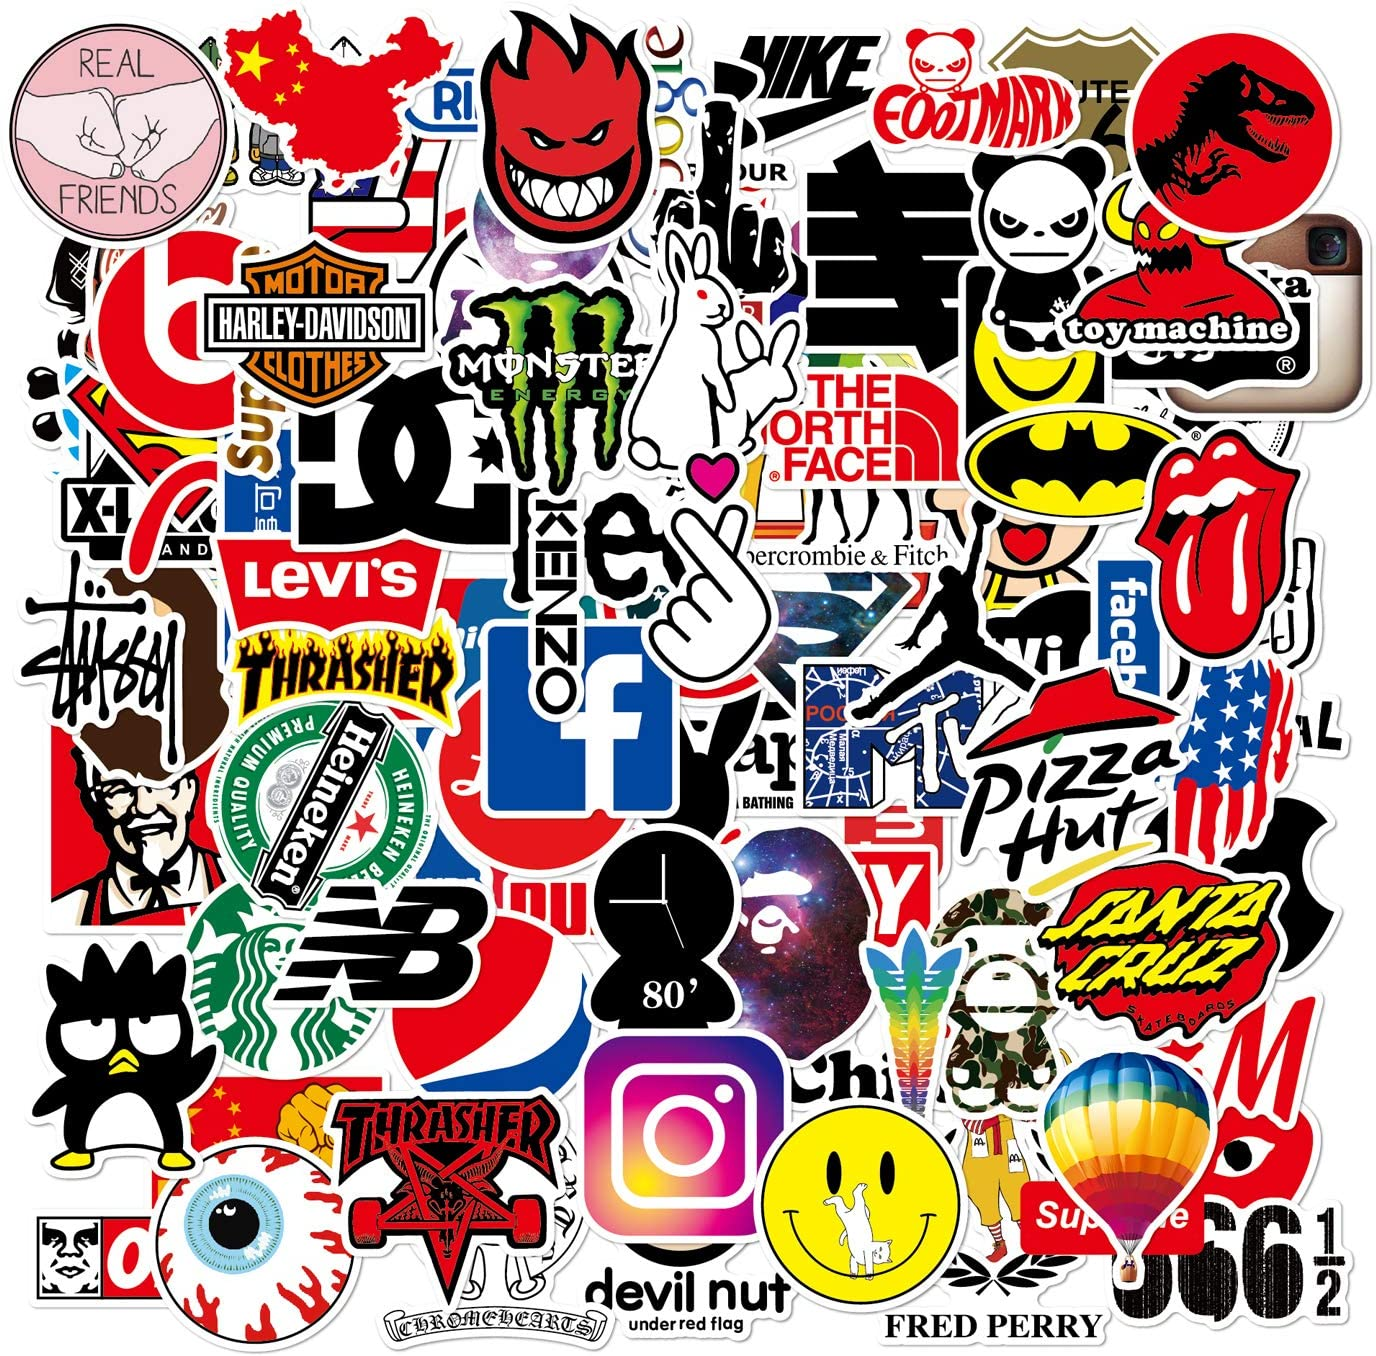 HappyThousands Cool Stickers Pack 103pcs, Vinyl Skateboard Stickers for Teens, Logo/ Brand Decal Stickers for Water Bottles Bike Laptop Luggage, Adult Teen Gifts